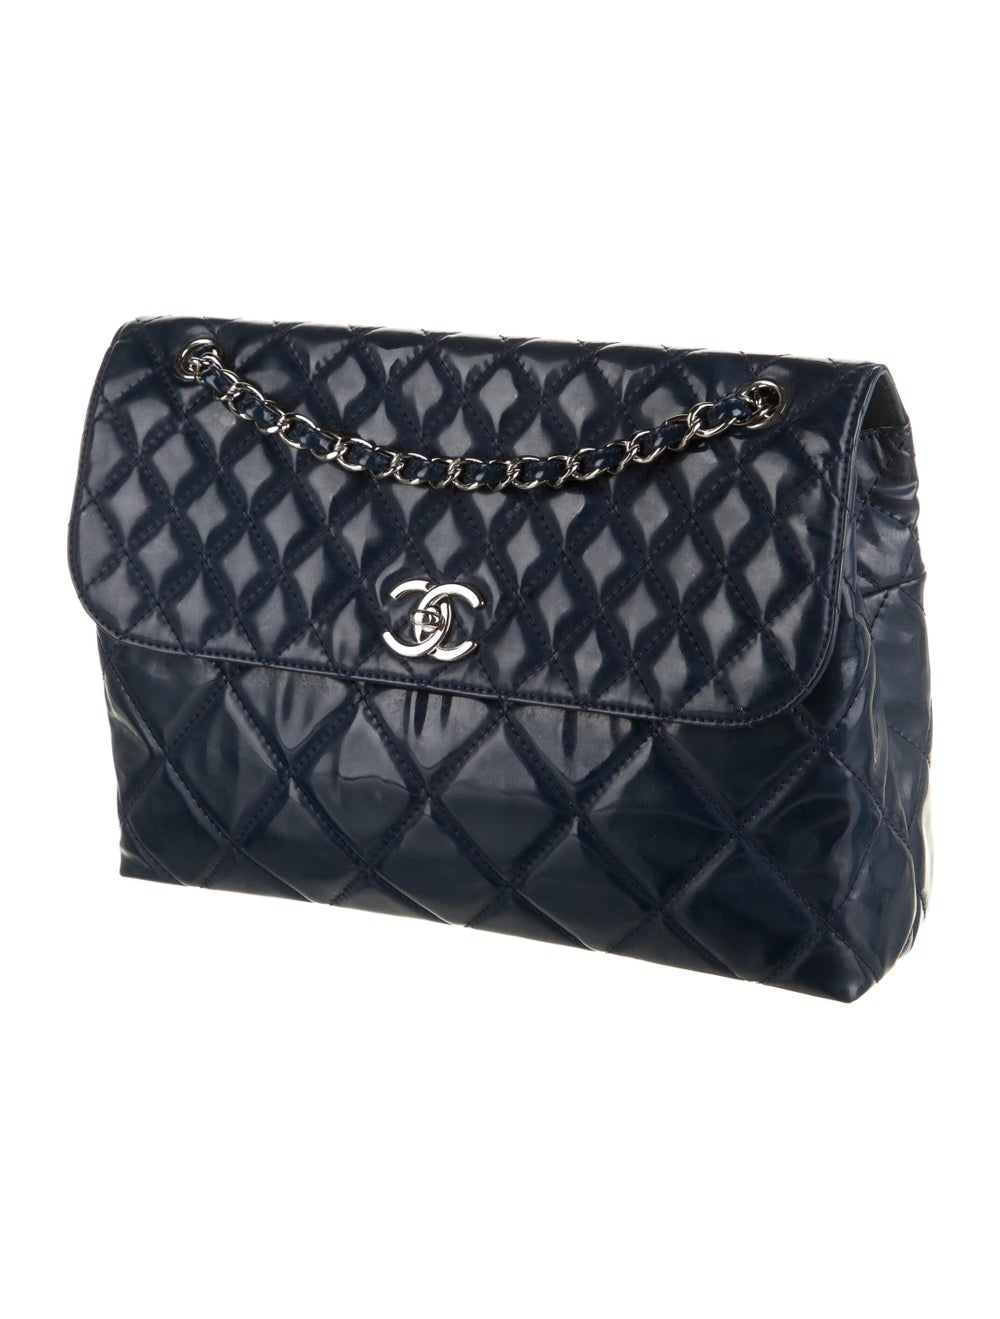 Chanel In The Business Patent Flap Bag Blue - image 3